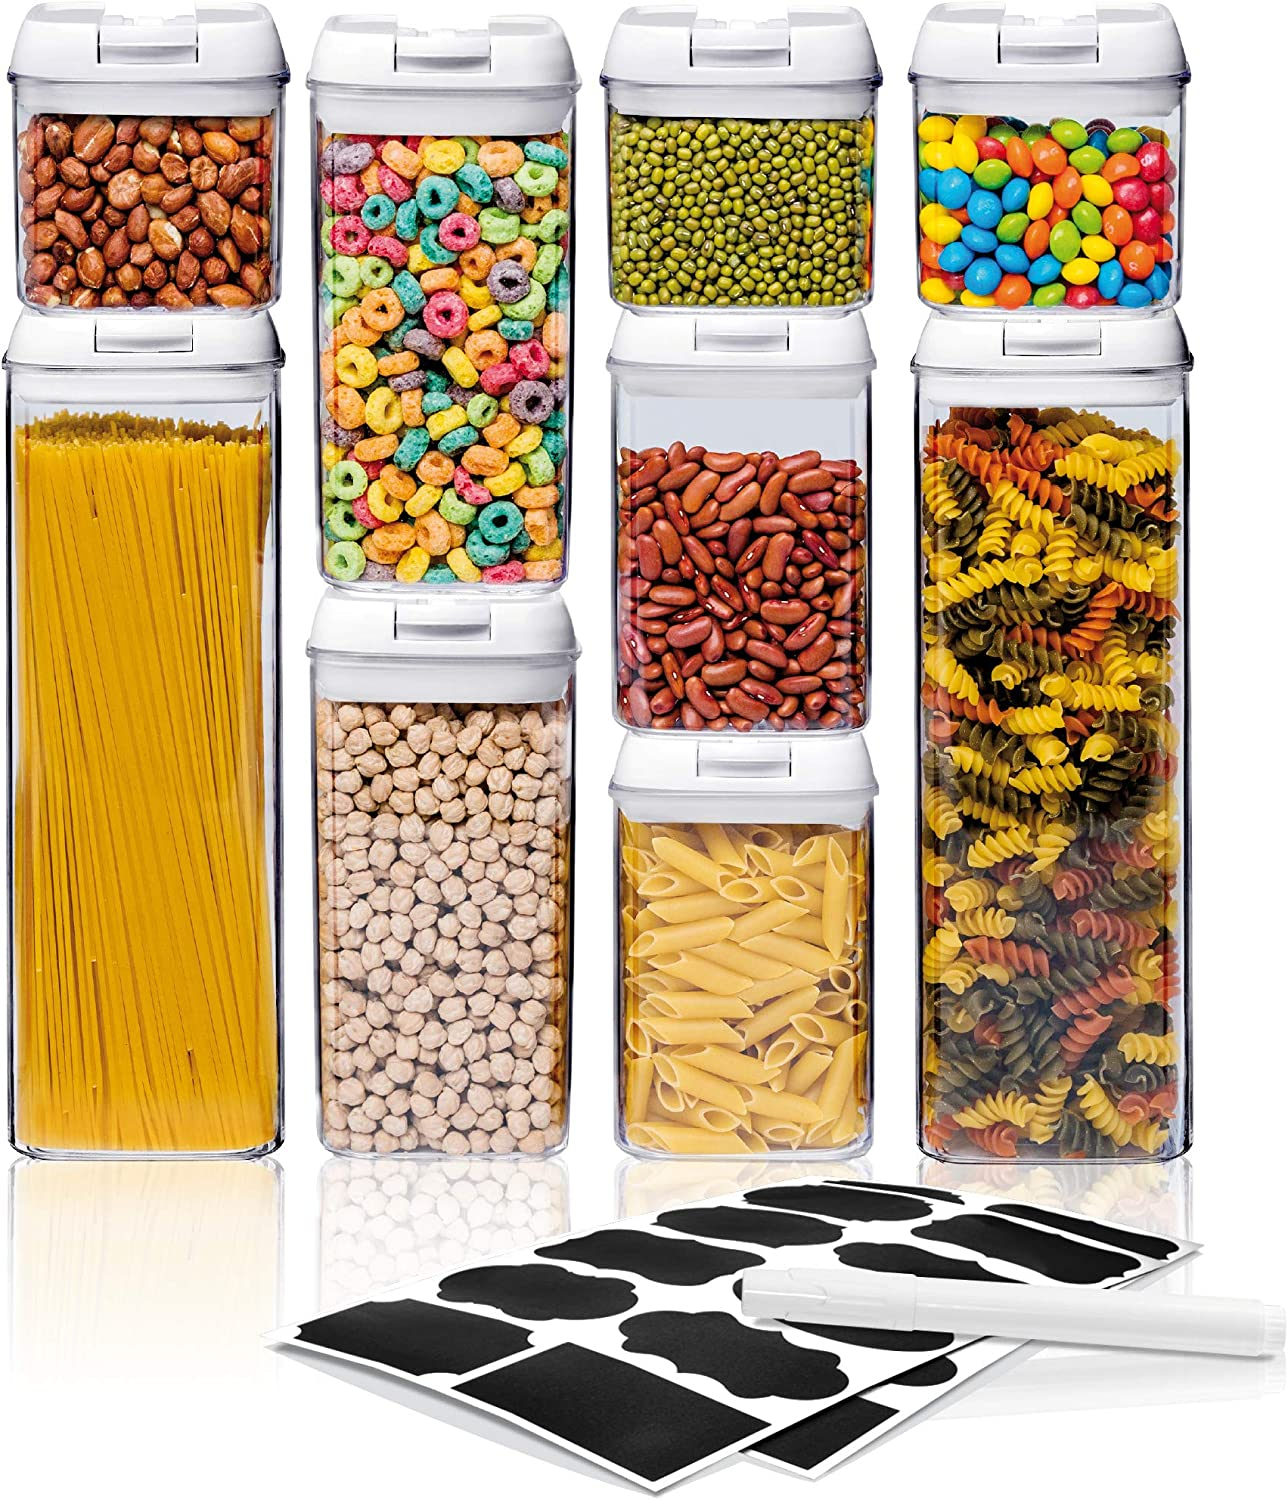 Airtight Food Storage Container Sets, Pantry Organization, Kitchen Organization, Pantry Containers, Larger Sizes with Interchangeable Lids,Premium Quality with Leak Proof Design -BPA FREE(9-Piece Set)